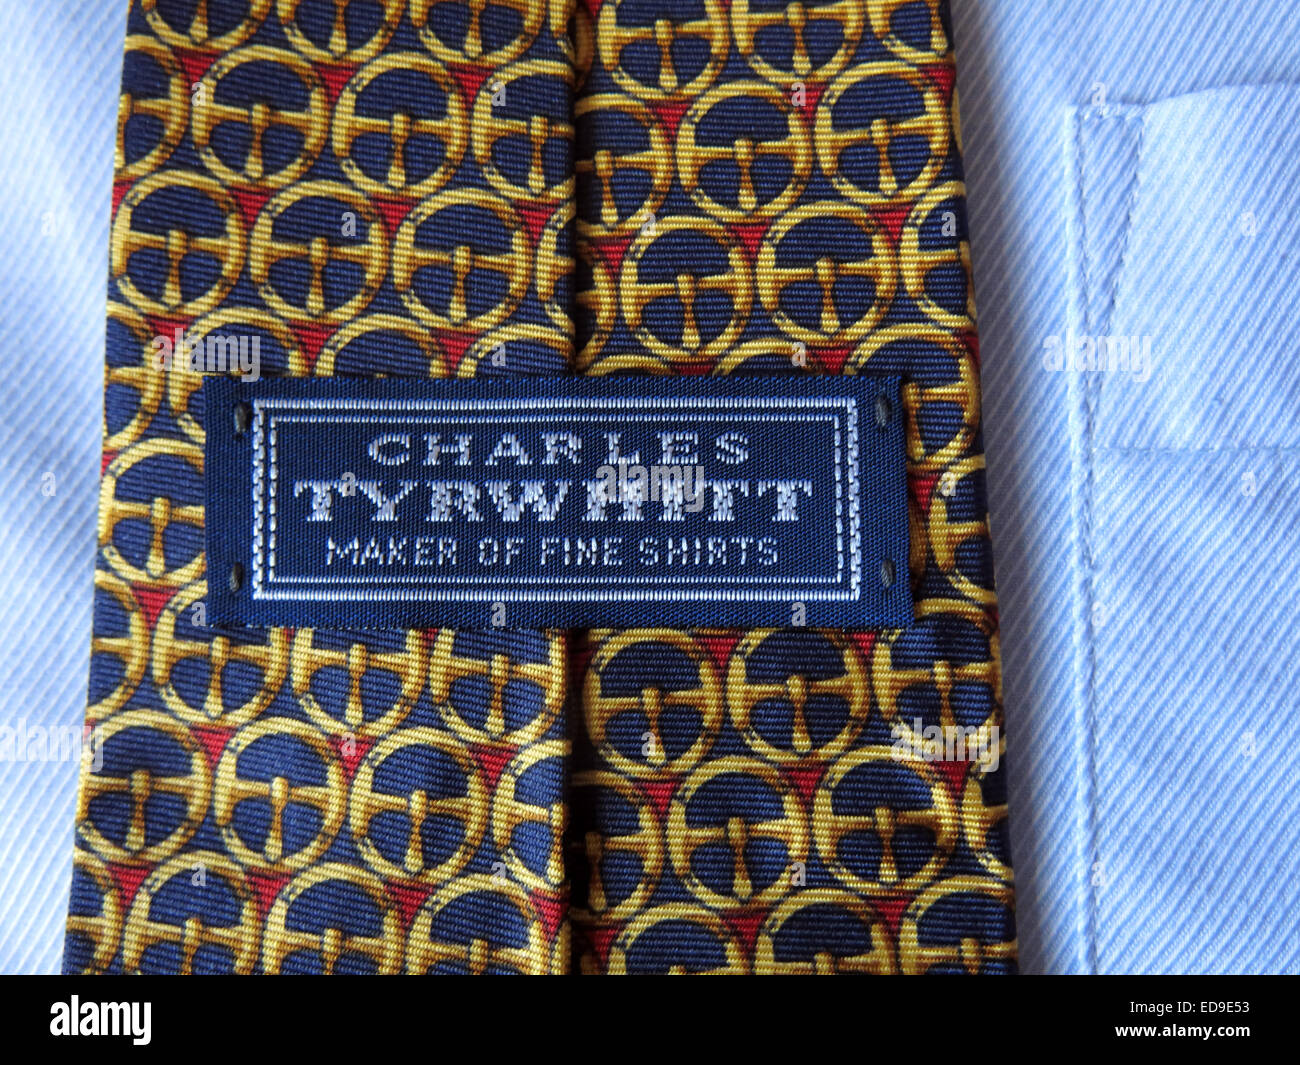 Interesting vintage Charles Tyrwhitt maker of fine shirts tie, male neckware in silk - Stock Image